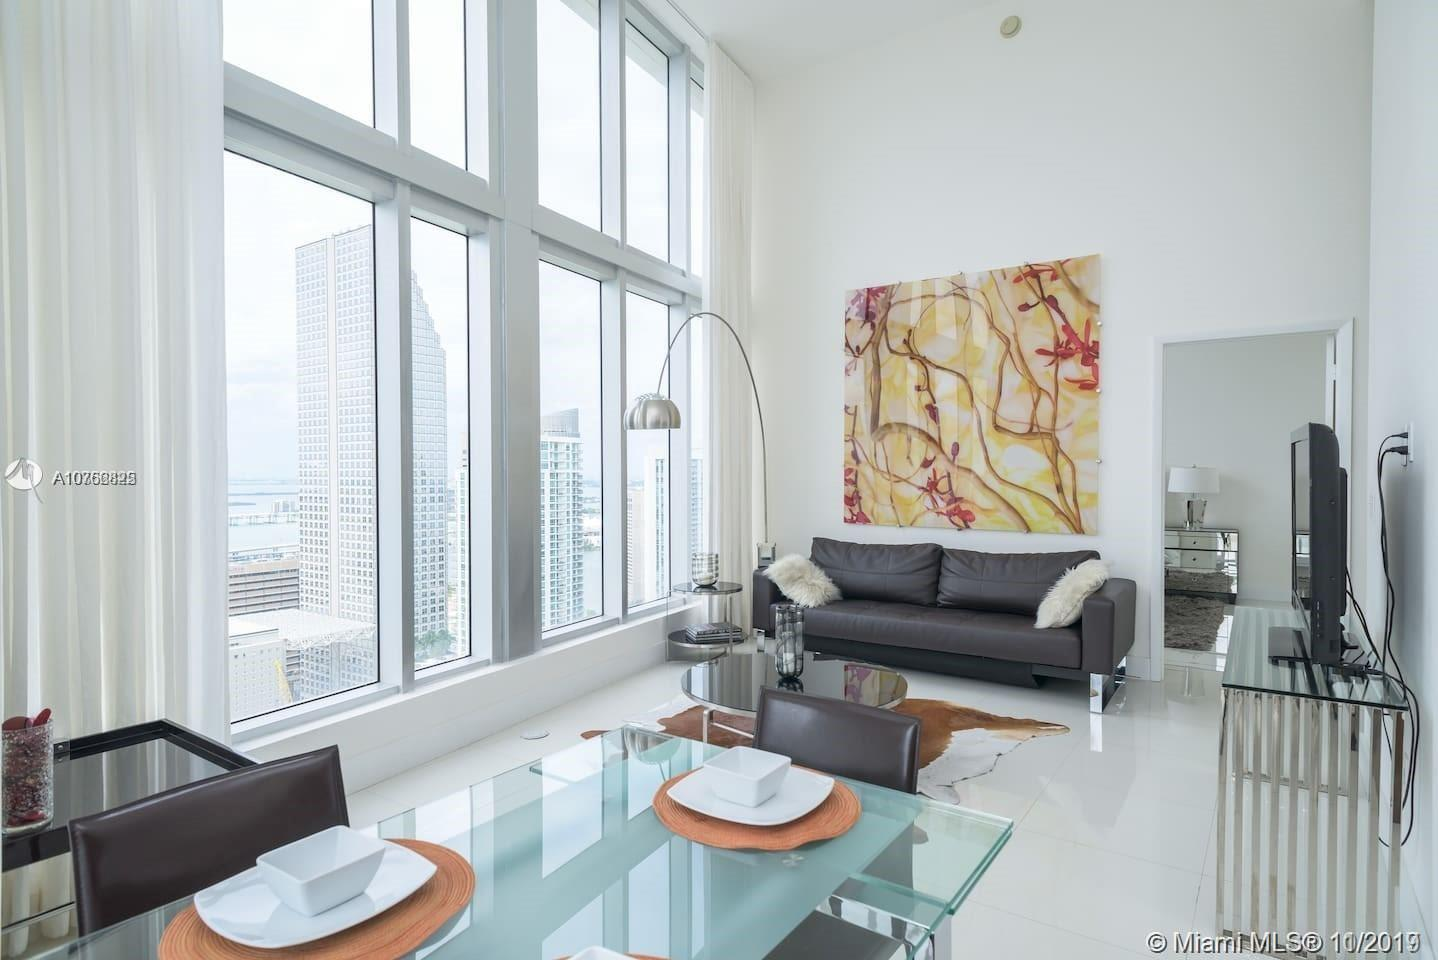 16FT Ceilings & incredible views!! Fully furnished by Tui Lifestyle, Top-of-the-line appliances, curtains throughout & blackout blinds in the bedrooms, move-in ready. Short term possible. Text agent for pricing and showings